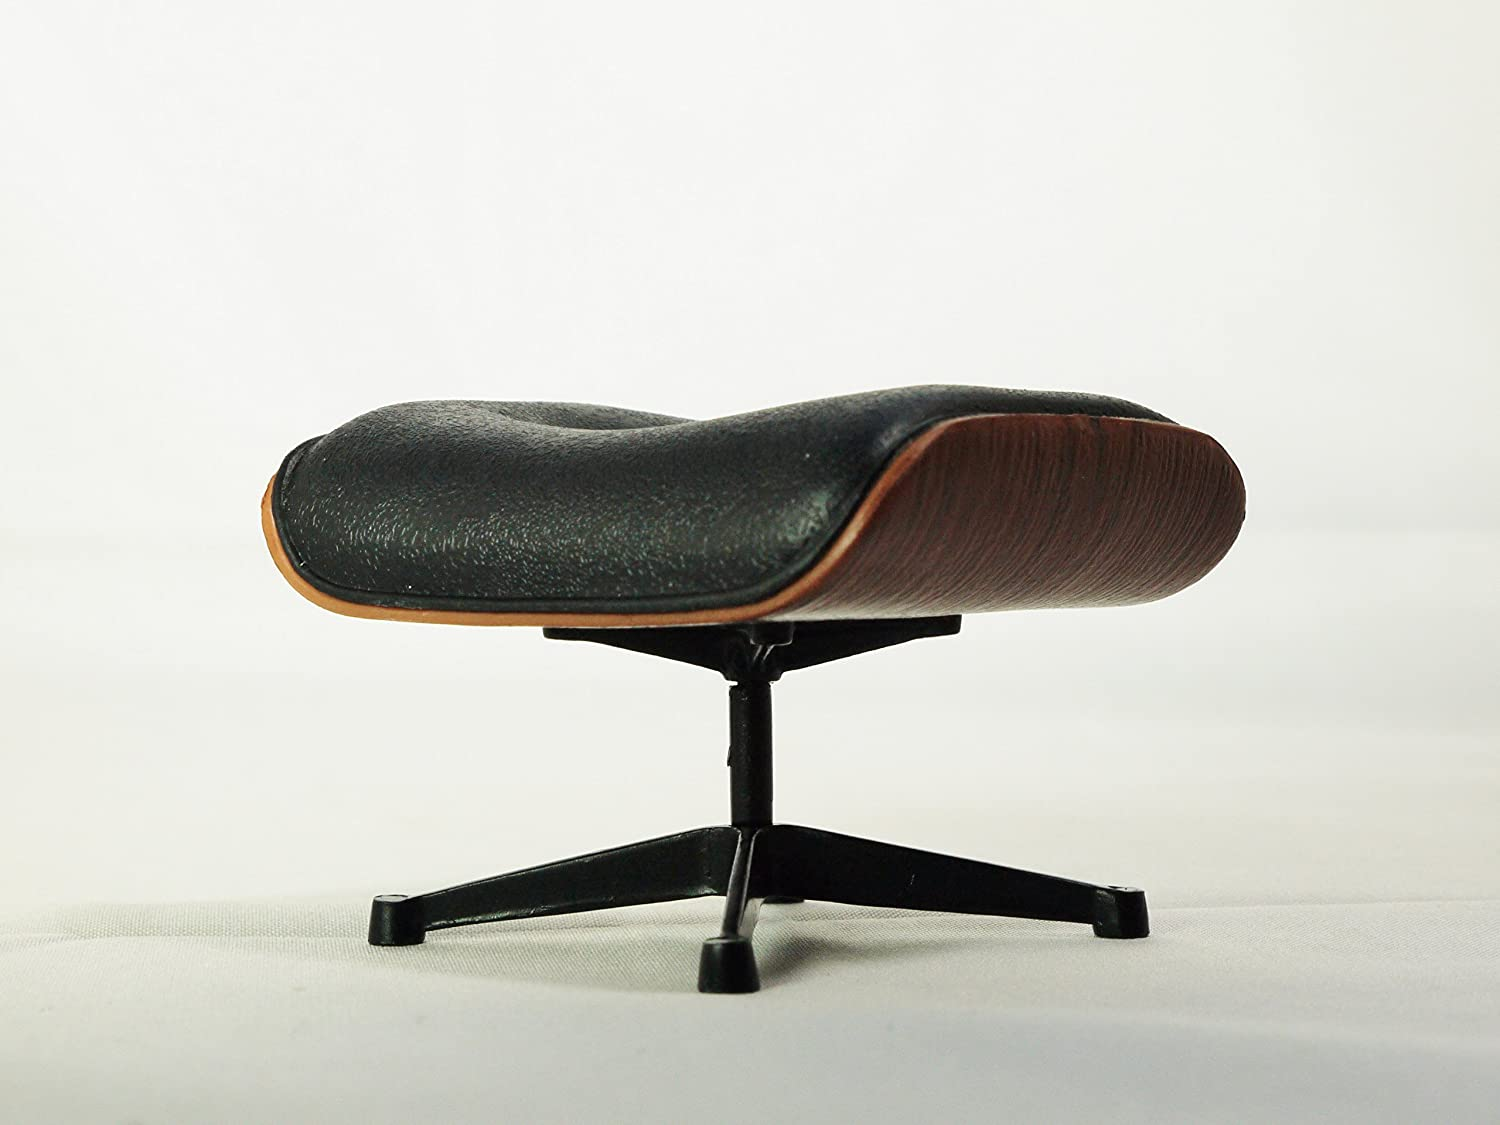 Amazon Com Reina Design Interior Collection 1 12 Designers Chairs Vol 2 Eames Ottoman By Charles And Ray Eames 1956 Black Color Toys Games